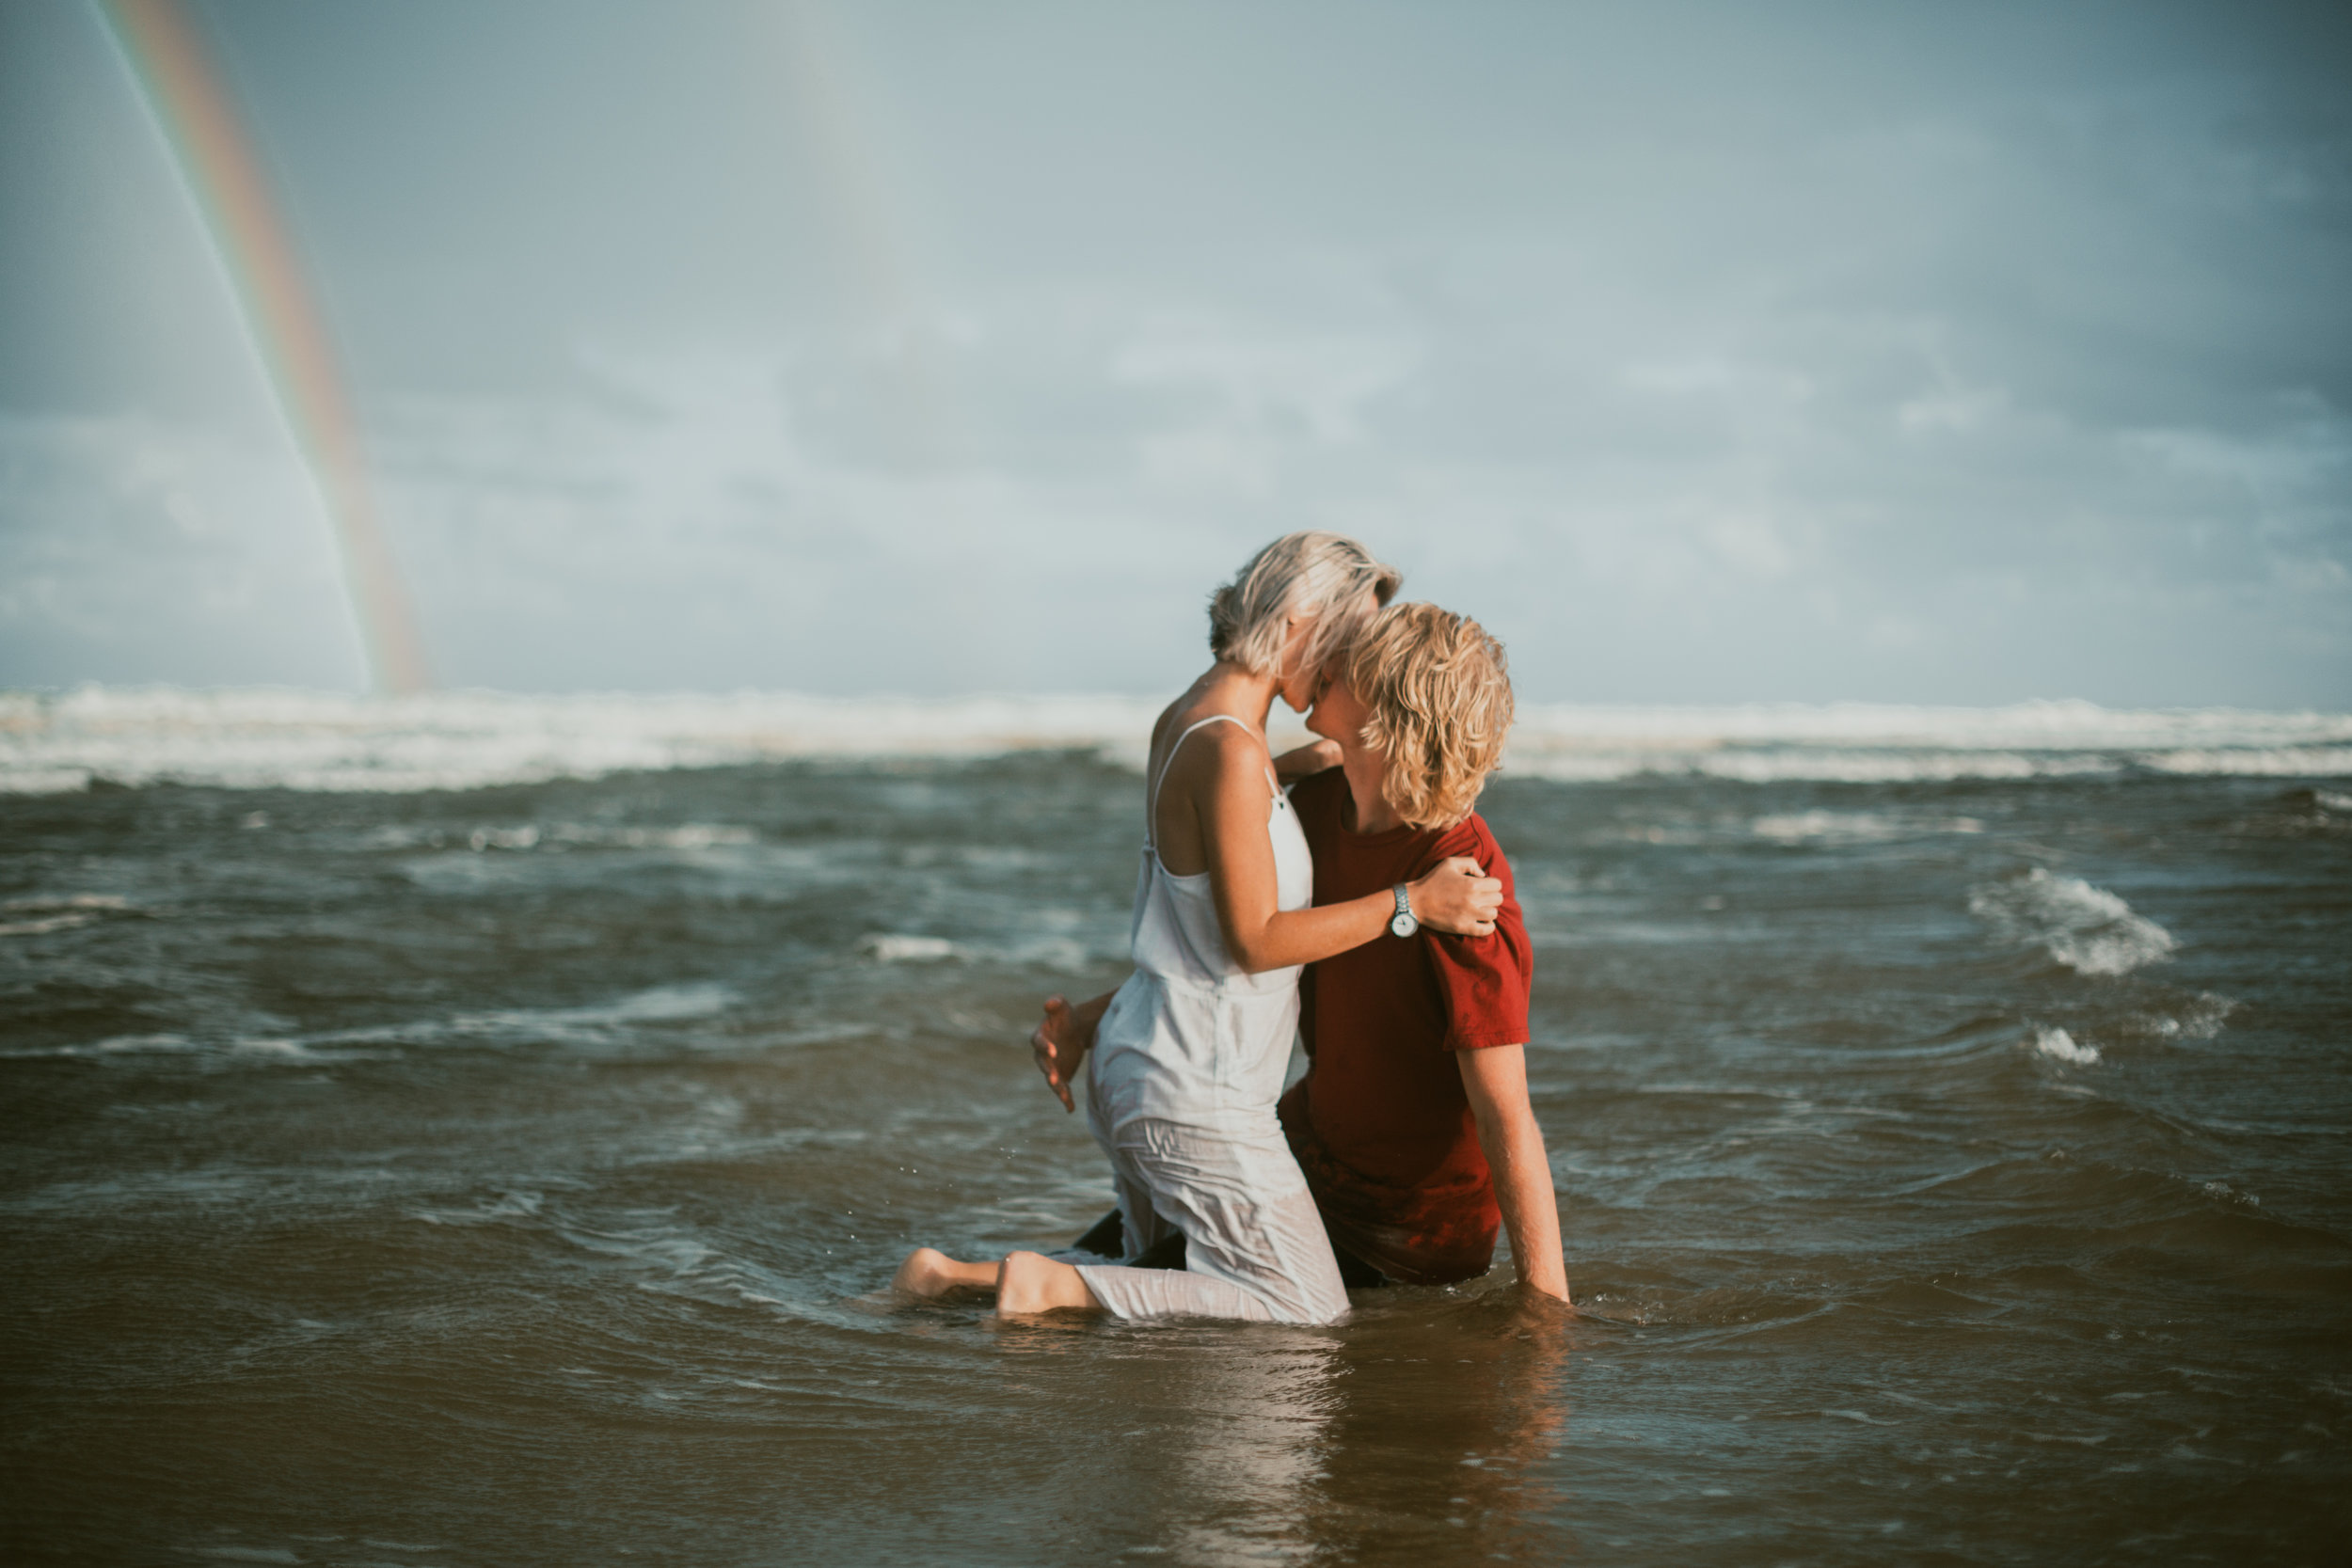 Emma & Jake - This Brunswick Heads Engagement Photoshoot was absolutely amazing! We had sun showers, a double rainbow, plus an epic couple who were willing to get wet and make -out in the ocean! Seriously  amazing!